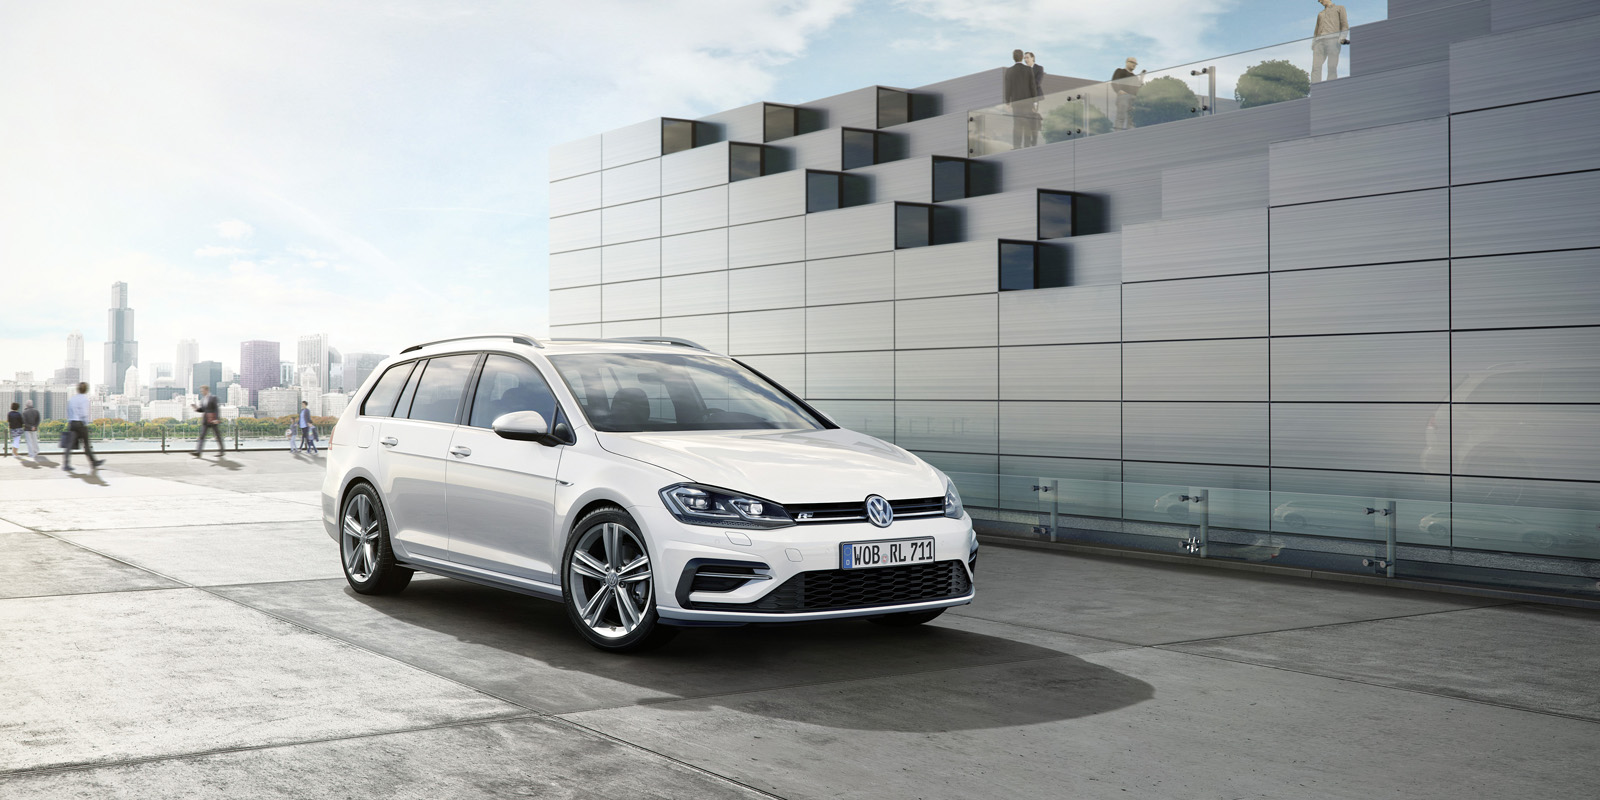 2016 - [Volkswagen] Golf VII restylée - Page 7 DB2016AU01136_large%2B%25281%2529